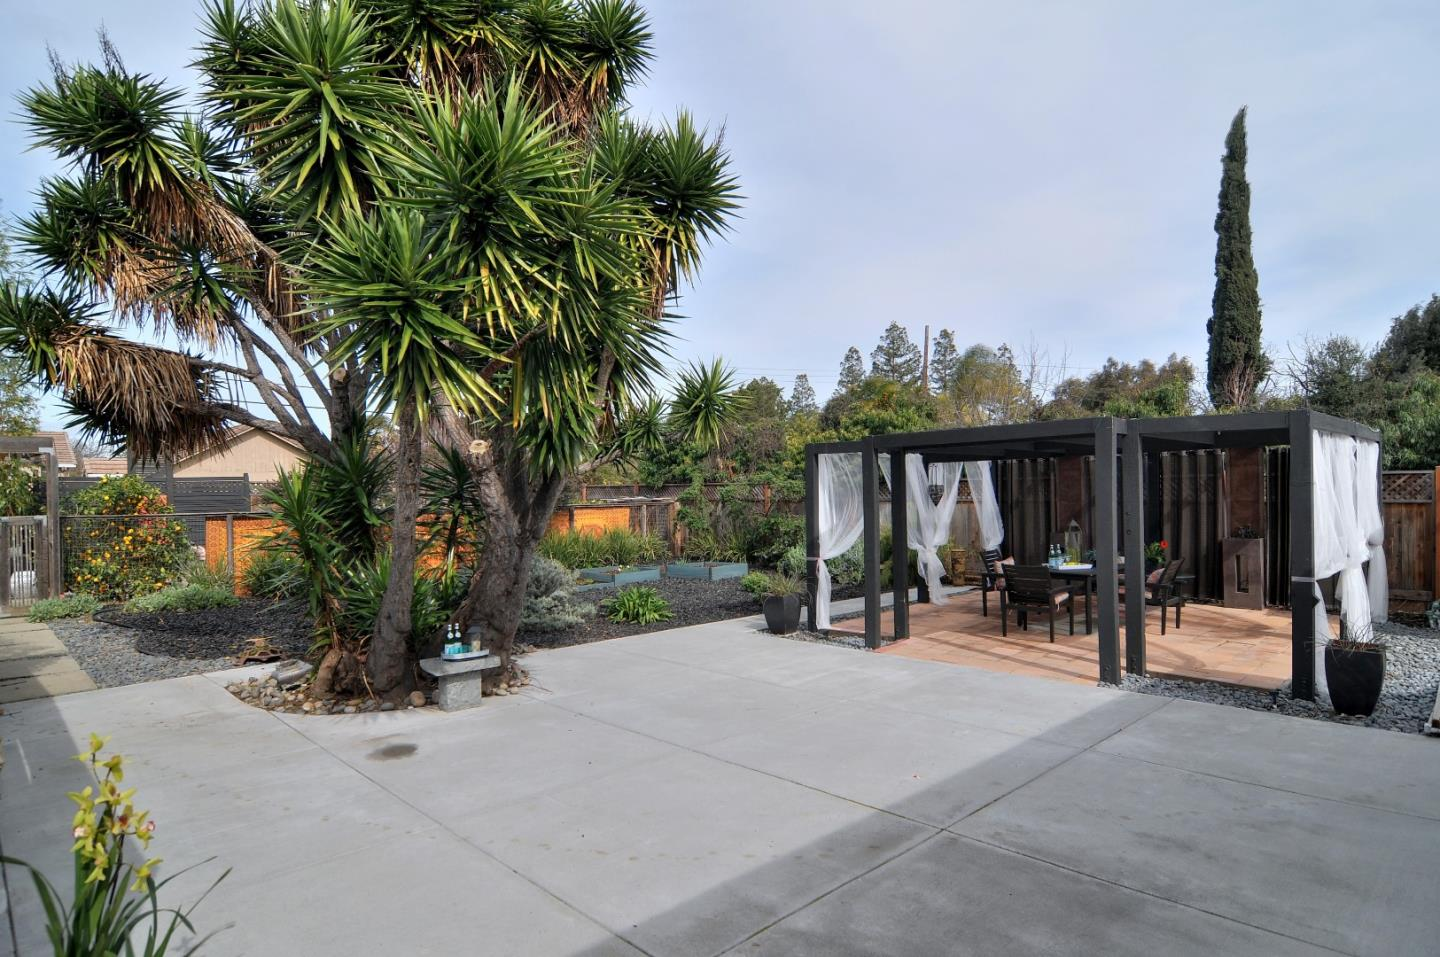 Additional photo for property listing at 3201 Finch Dr  SAN JOSE, CALIFORNIA 95117